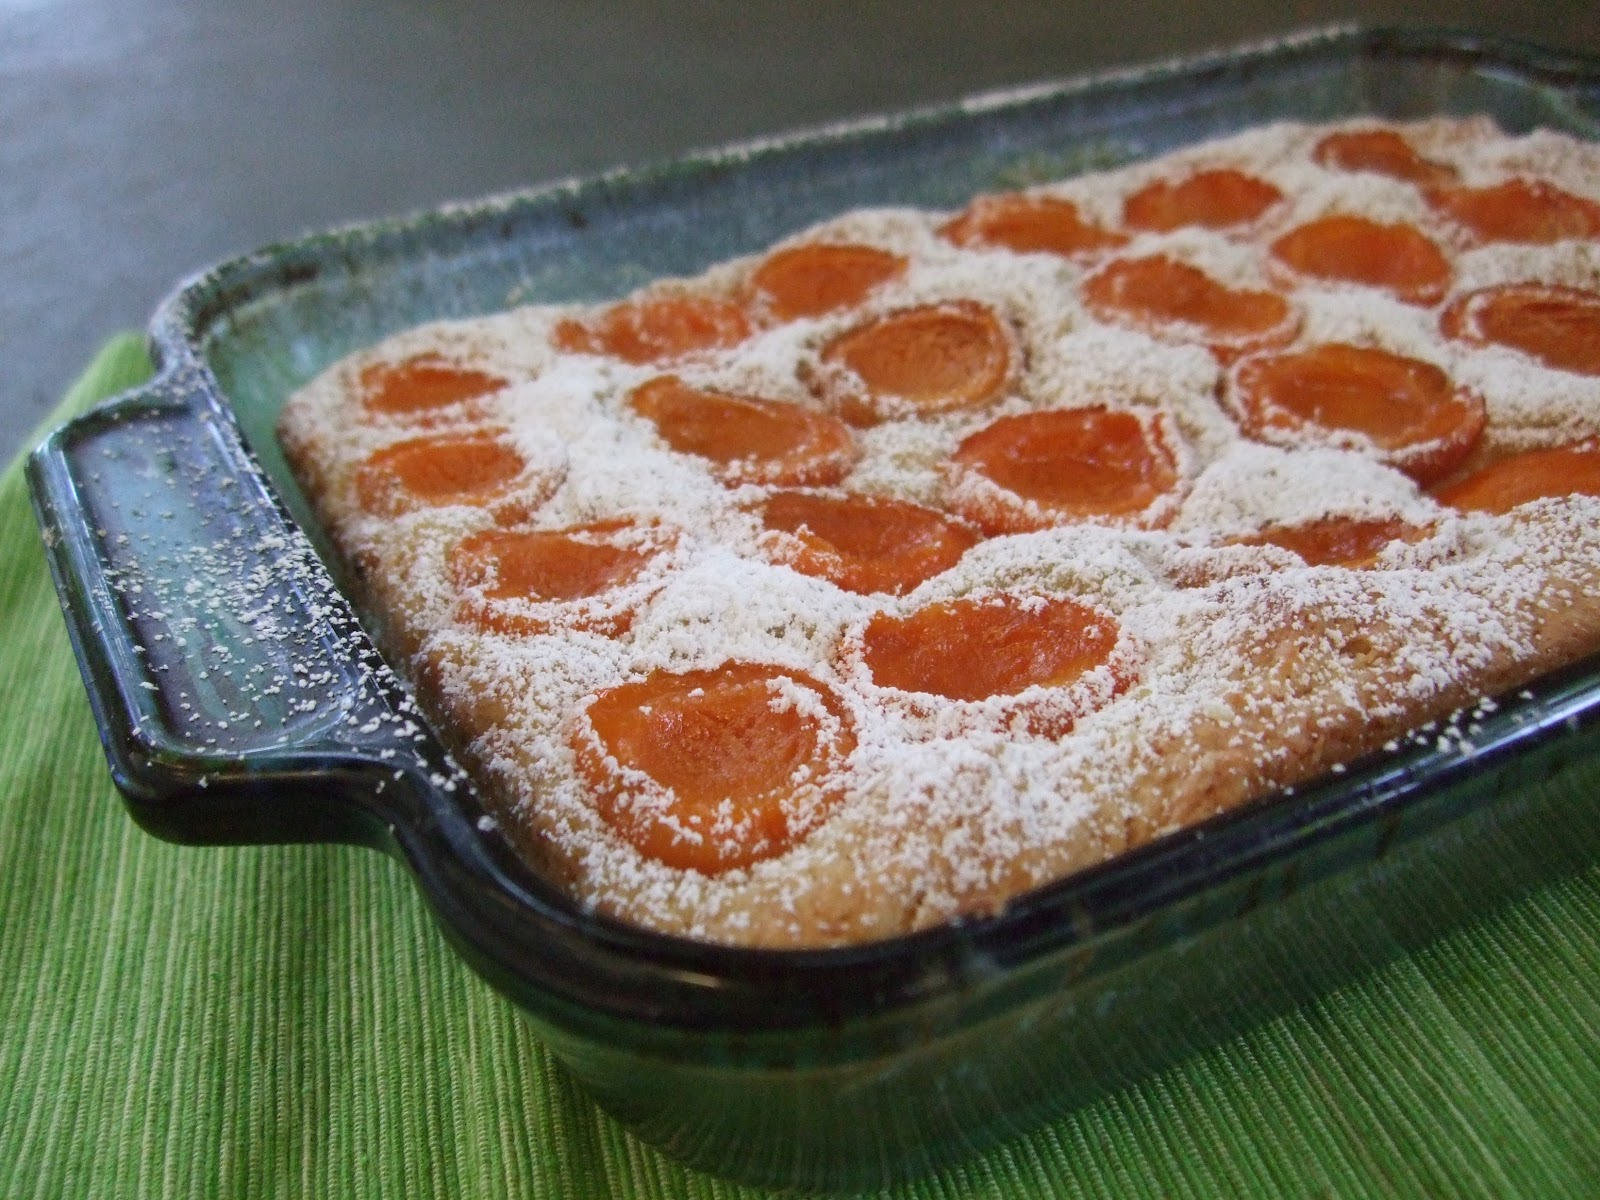 Gluten Free in SLC: Fresh Apricot Coffee Cake